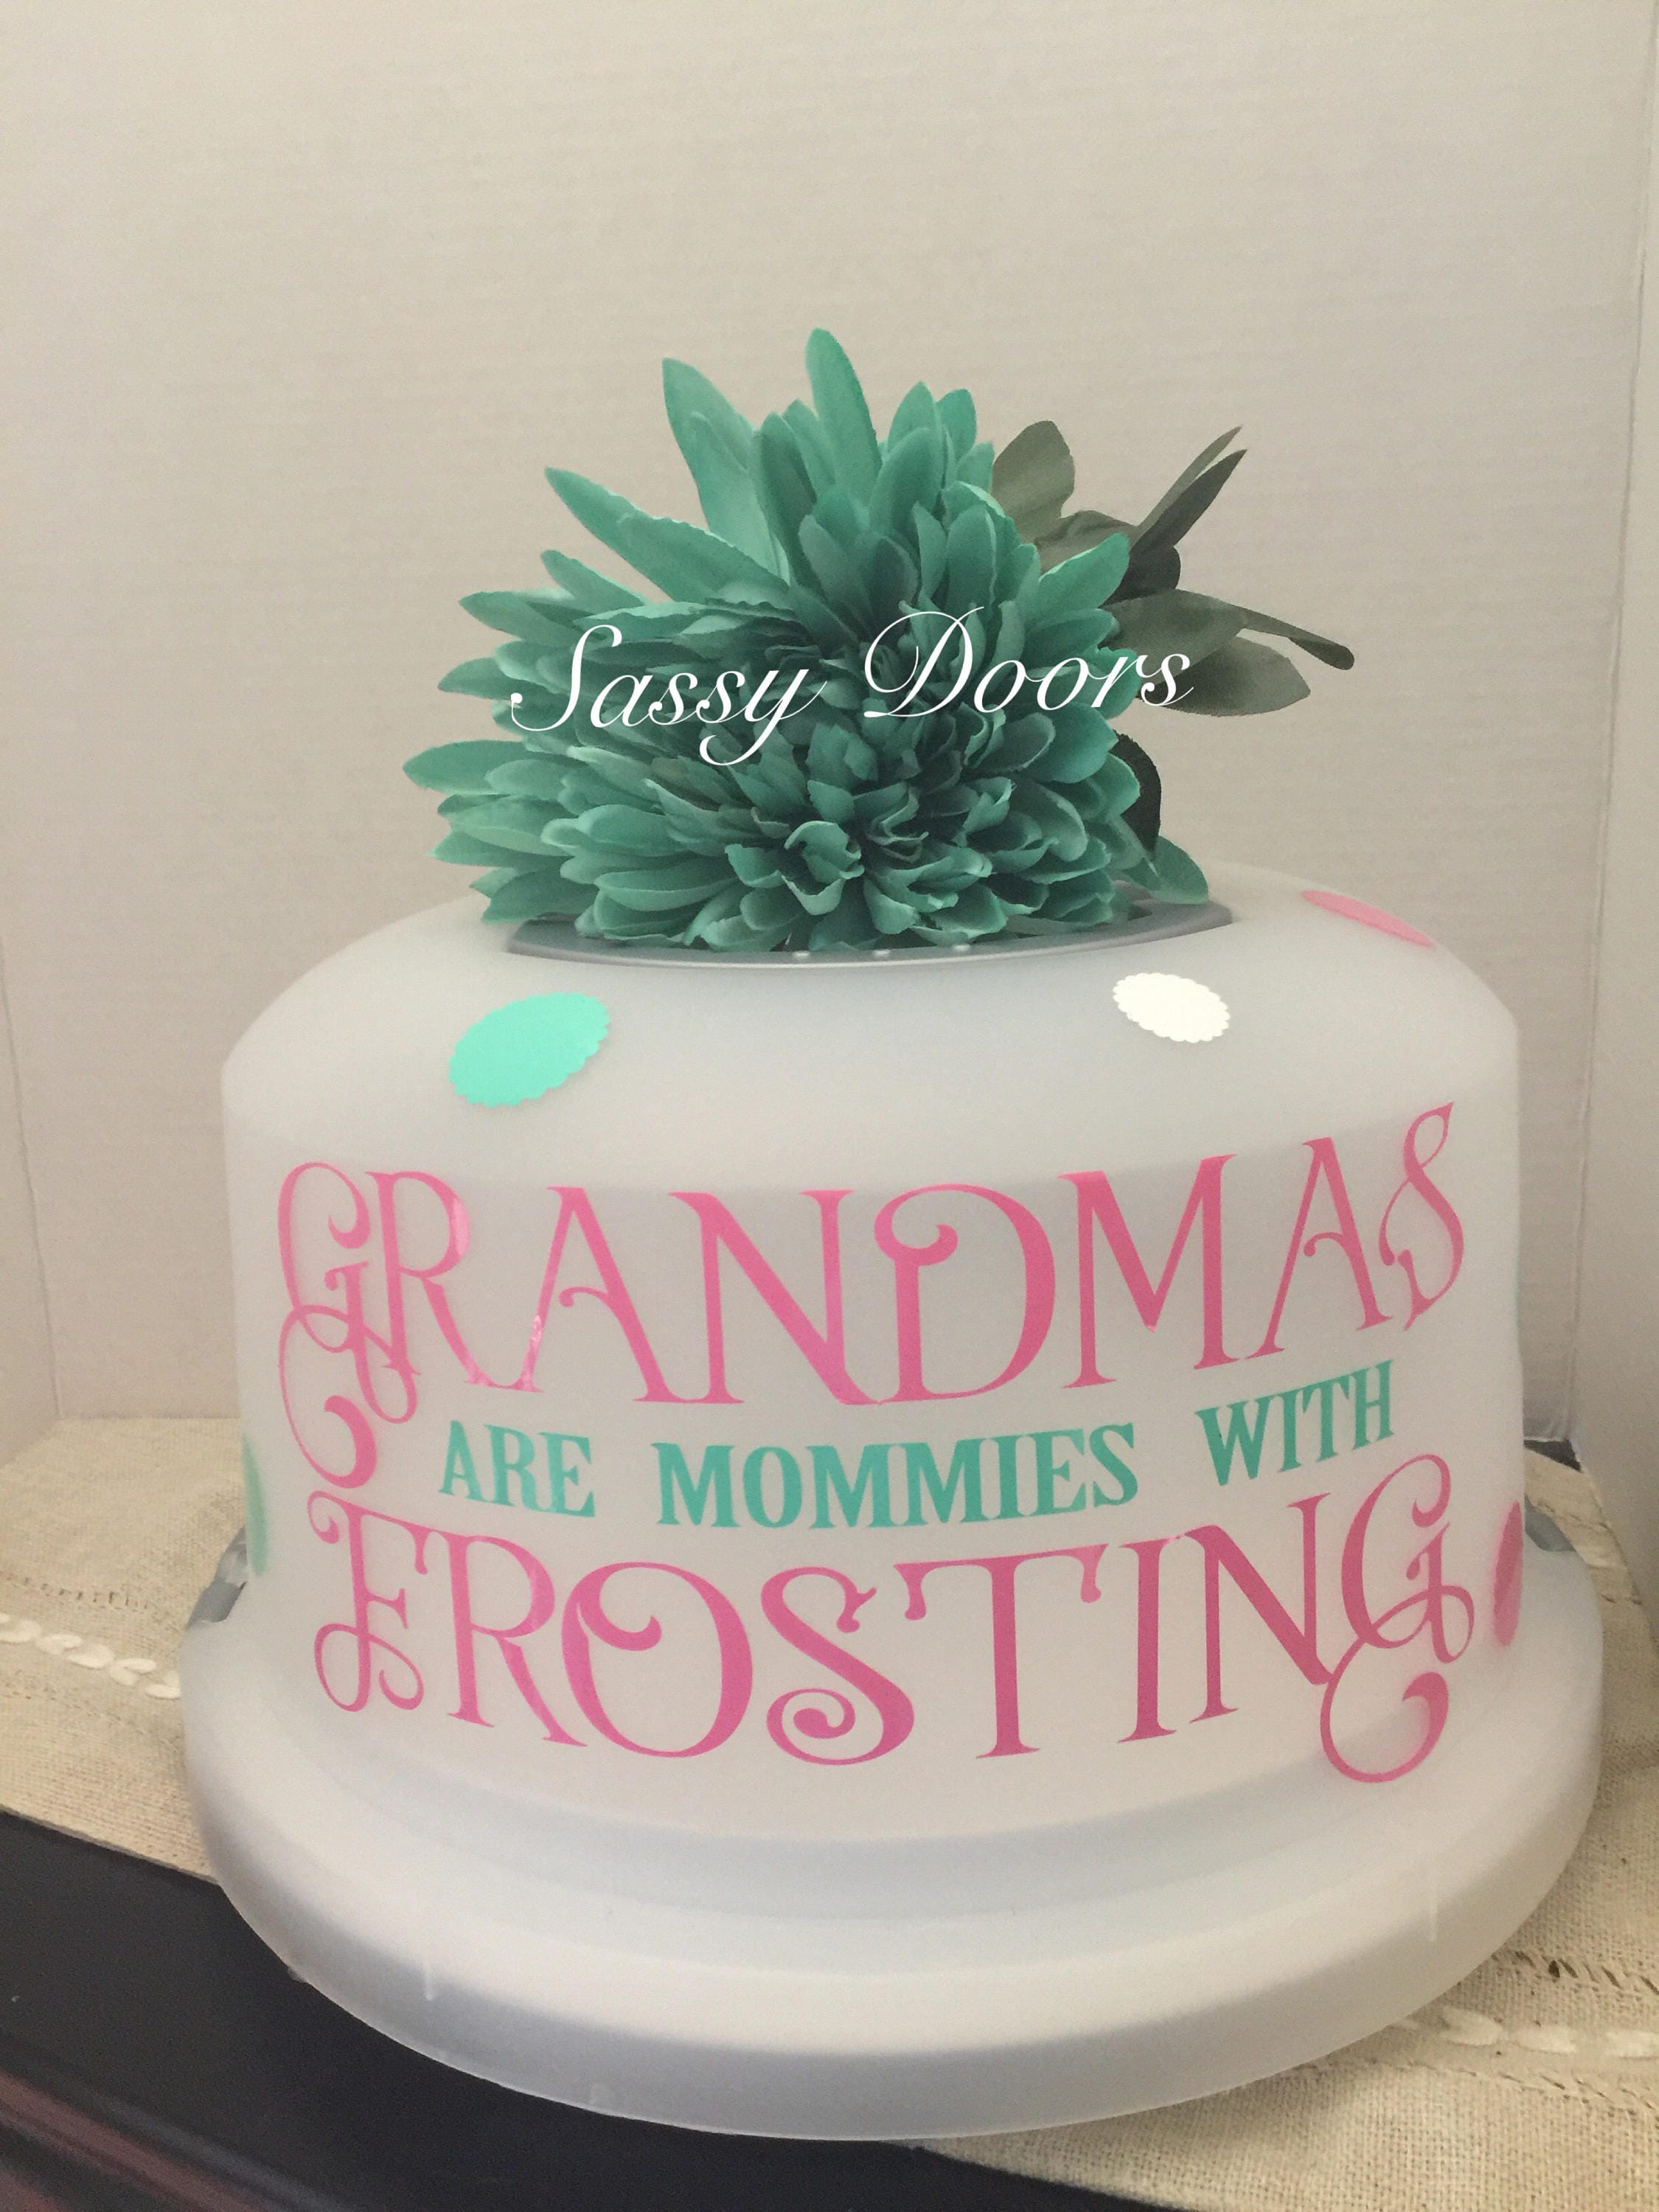 Free shipping cake cover cake carrier grandparents gift gifts free shipping cake cover cake carrier grandparents gift gifts for mom home decor kitchen decor personalized gift negle Images